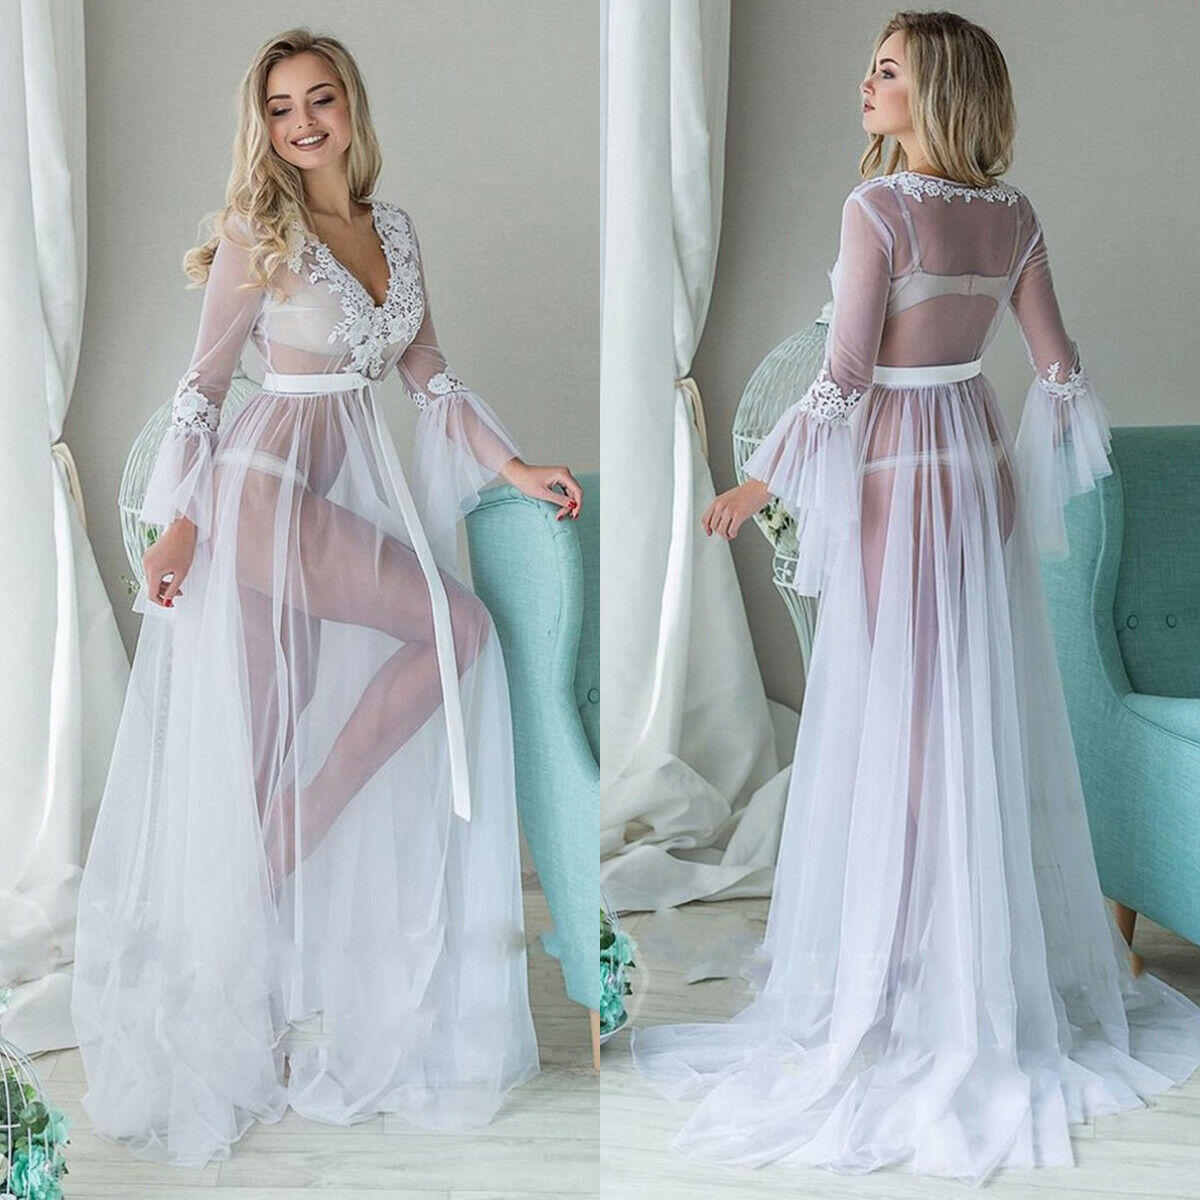 Sexy Women Lingerie Lace Cover Ups Babydoll Long Flare Sleeve See-through Mesh Sheer Ladies Floral V Neck Long Robes Dress